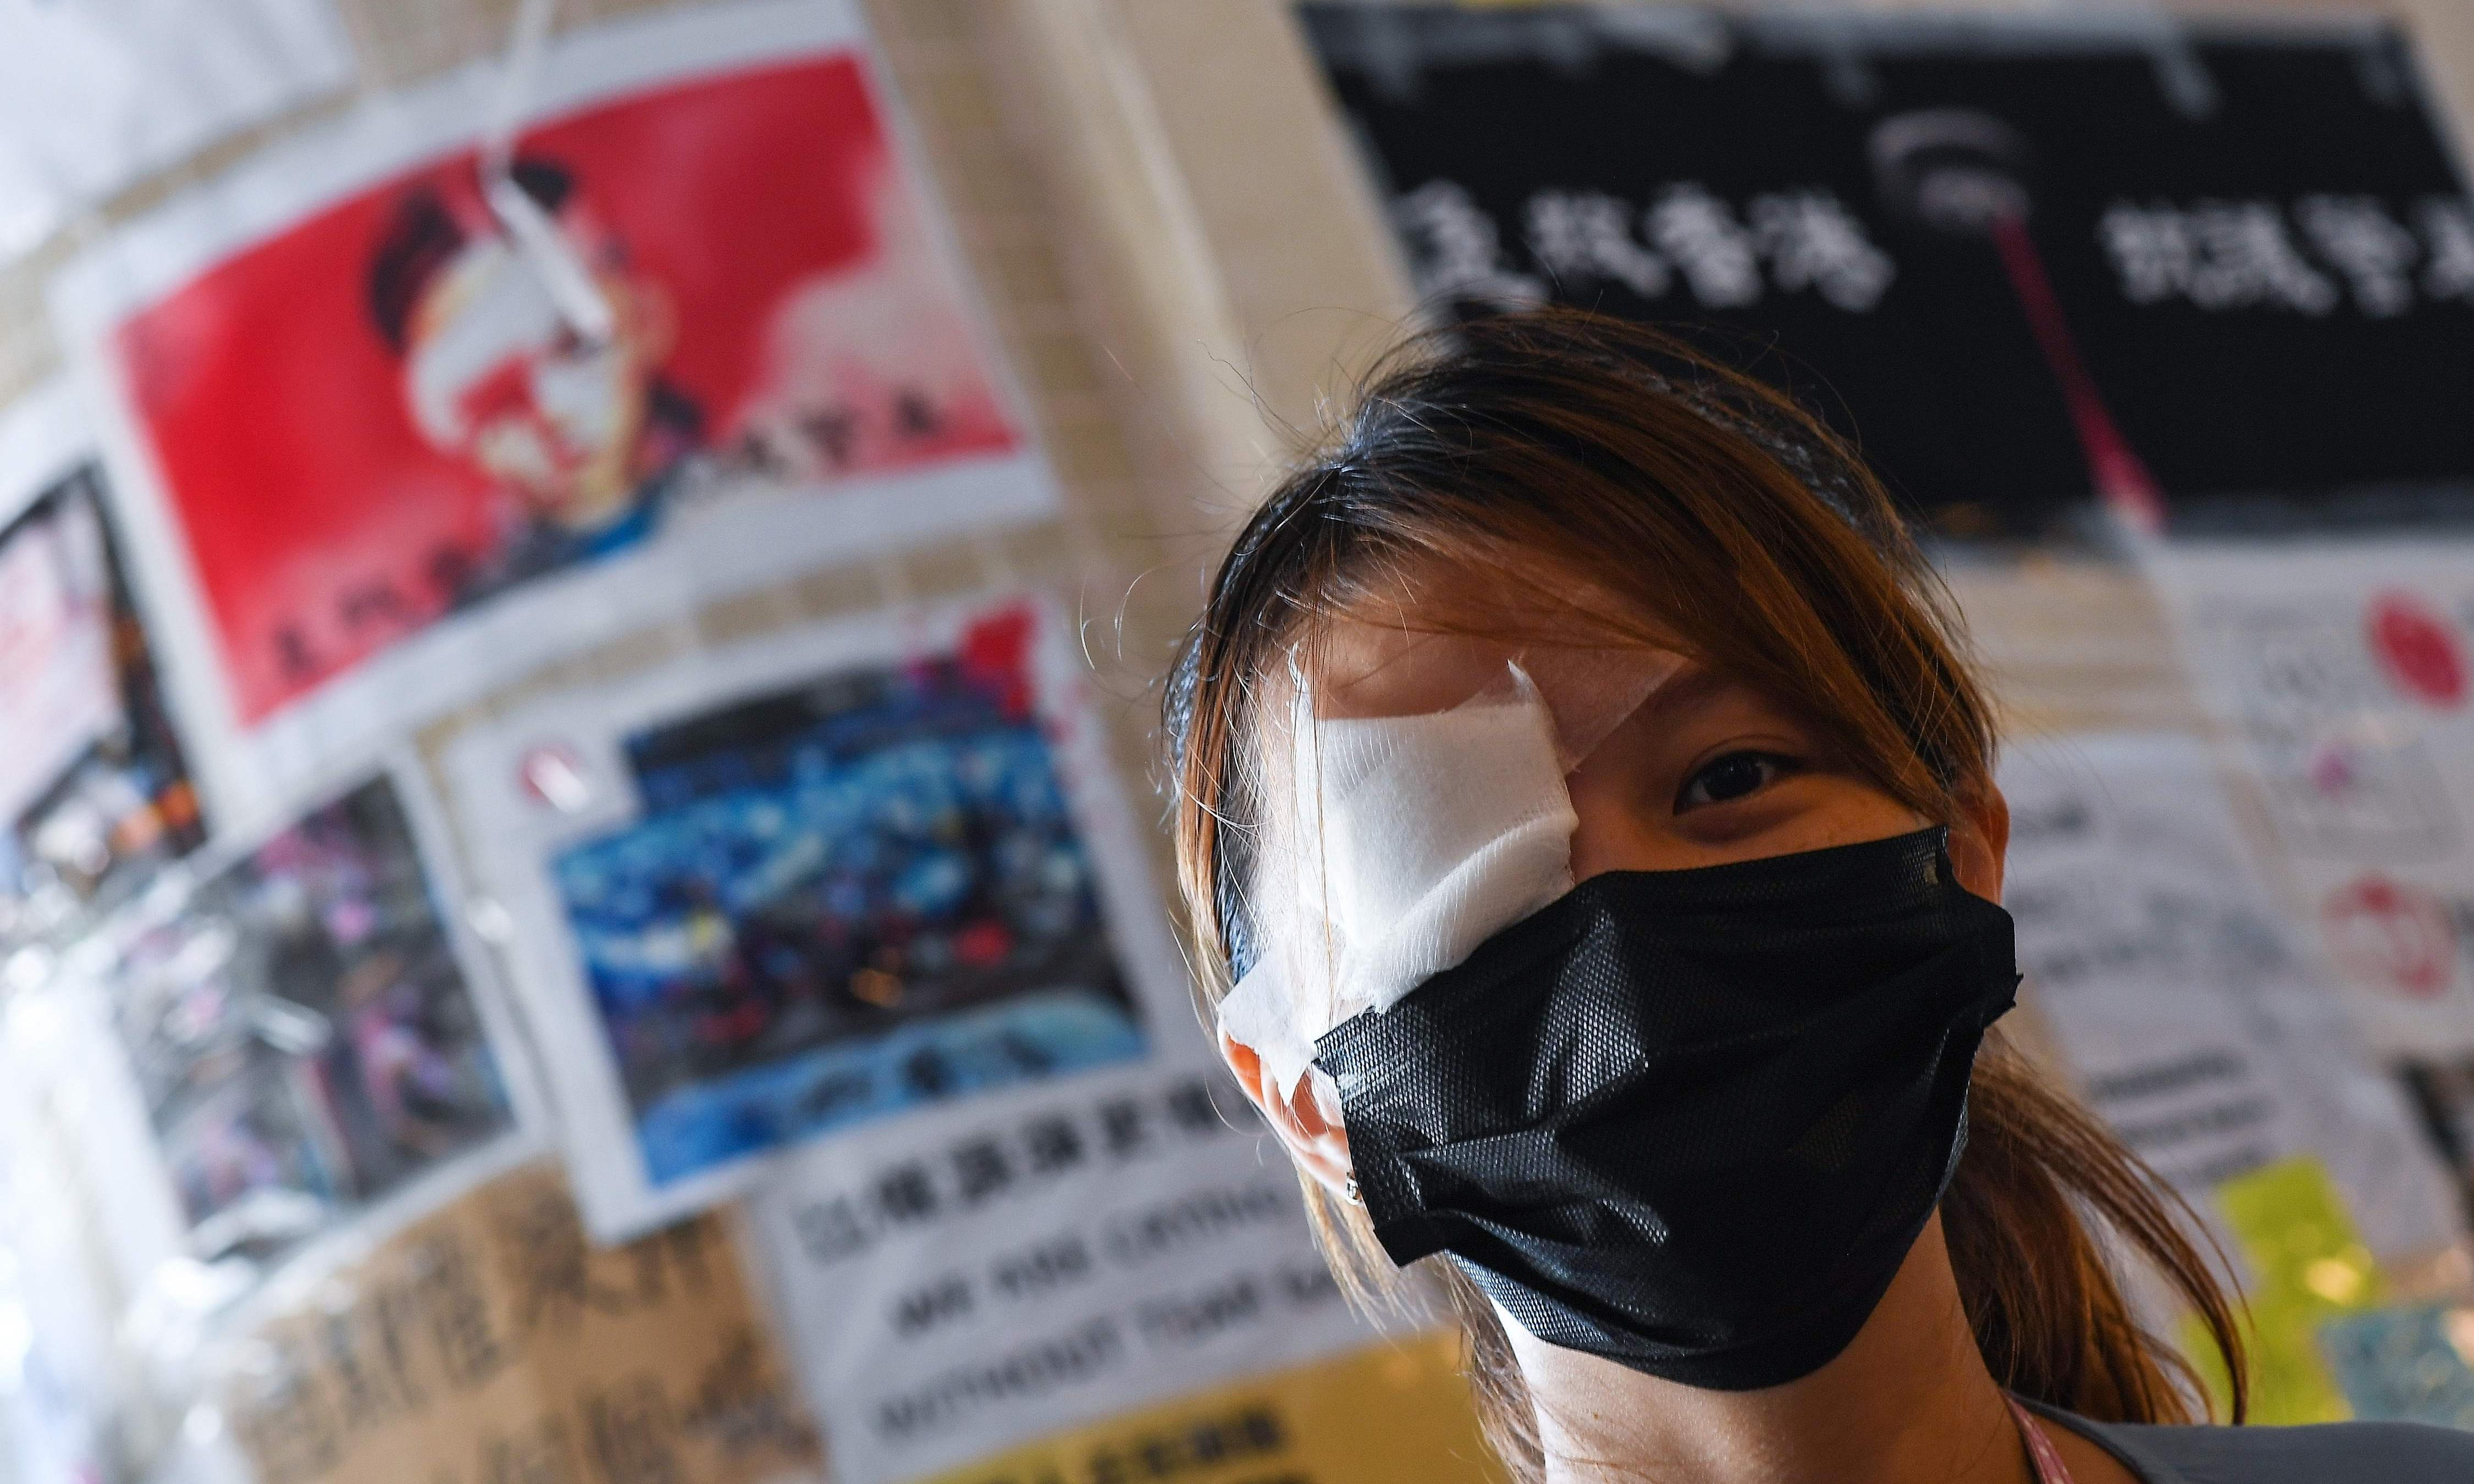 'An eye for an eye': Hong Kong protests get figurehead in woman injured by police